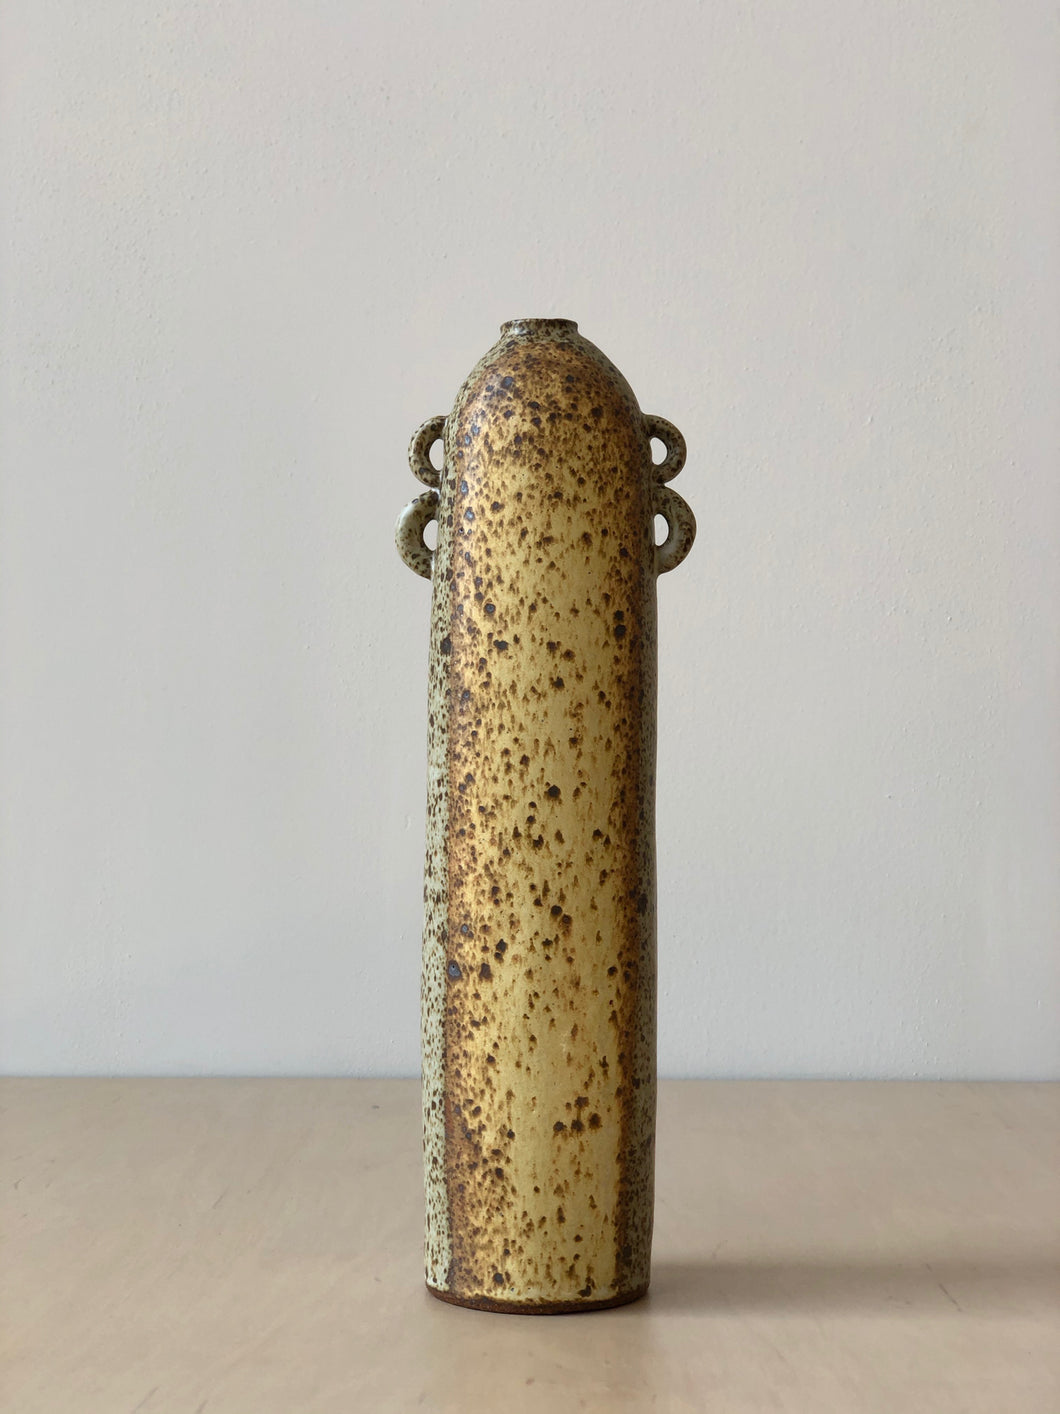 Neutral Speckled Vase with Loop Handles